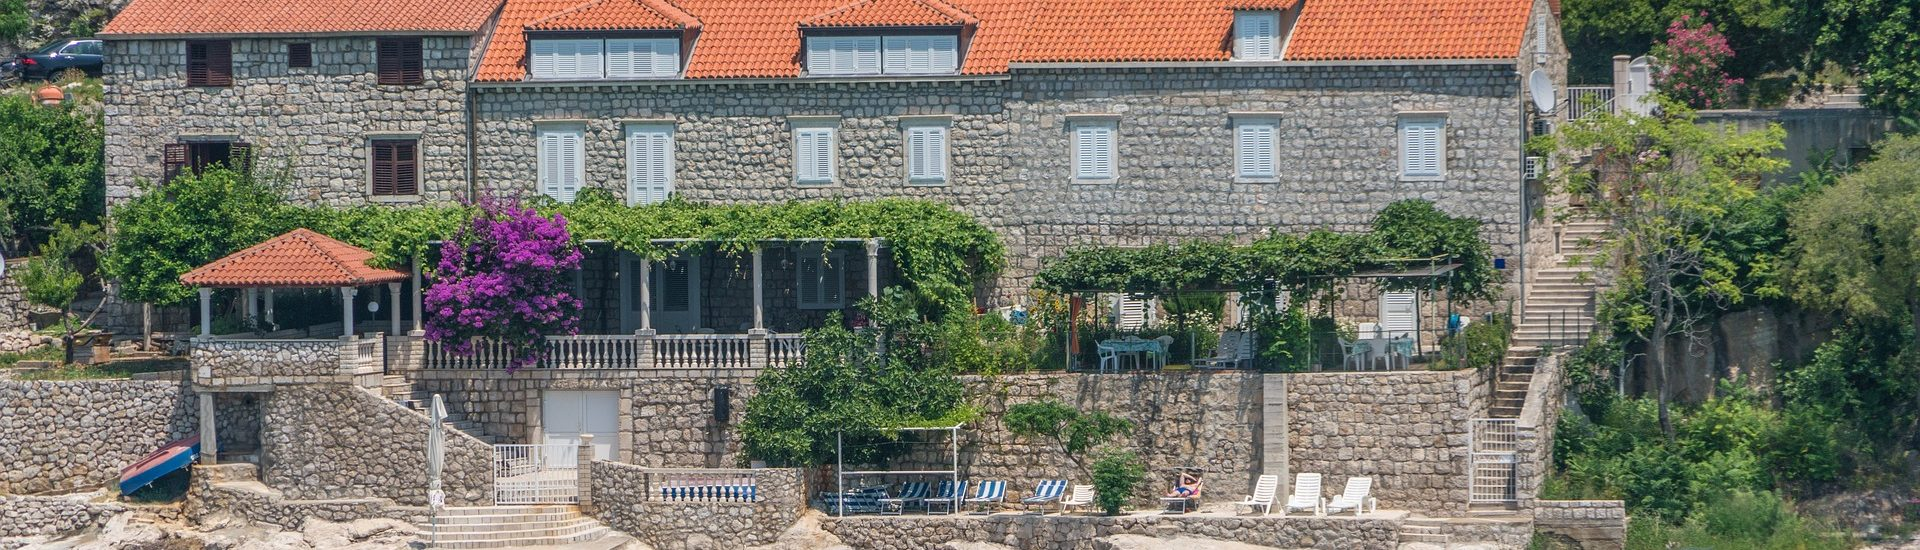 Croatia stone house